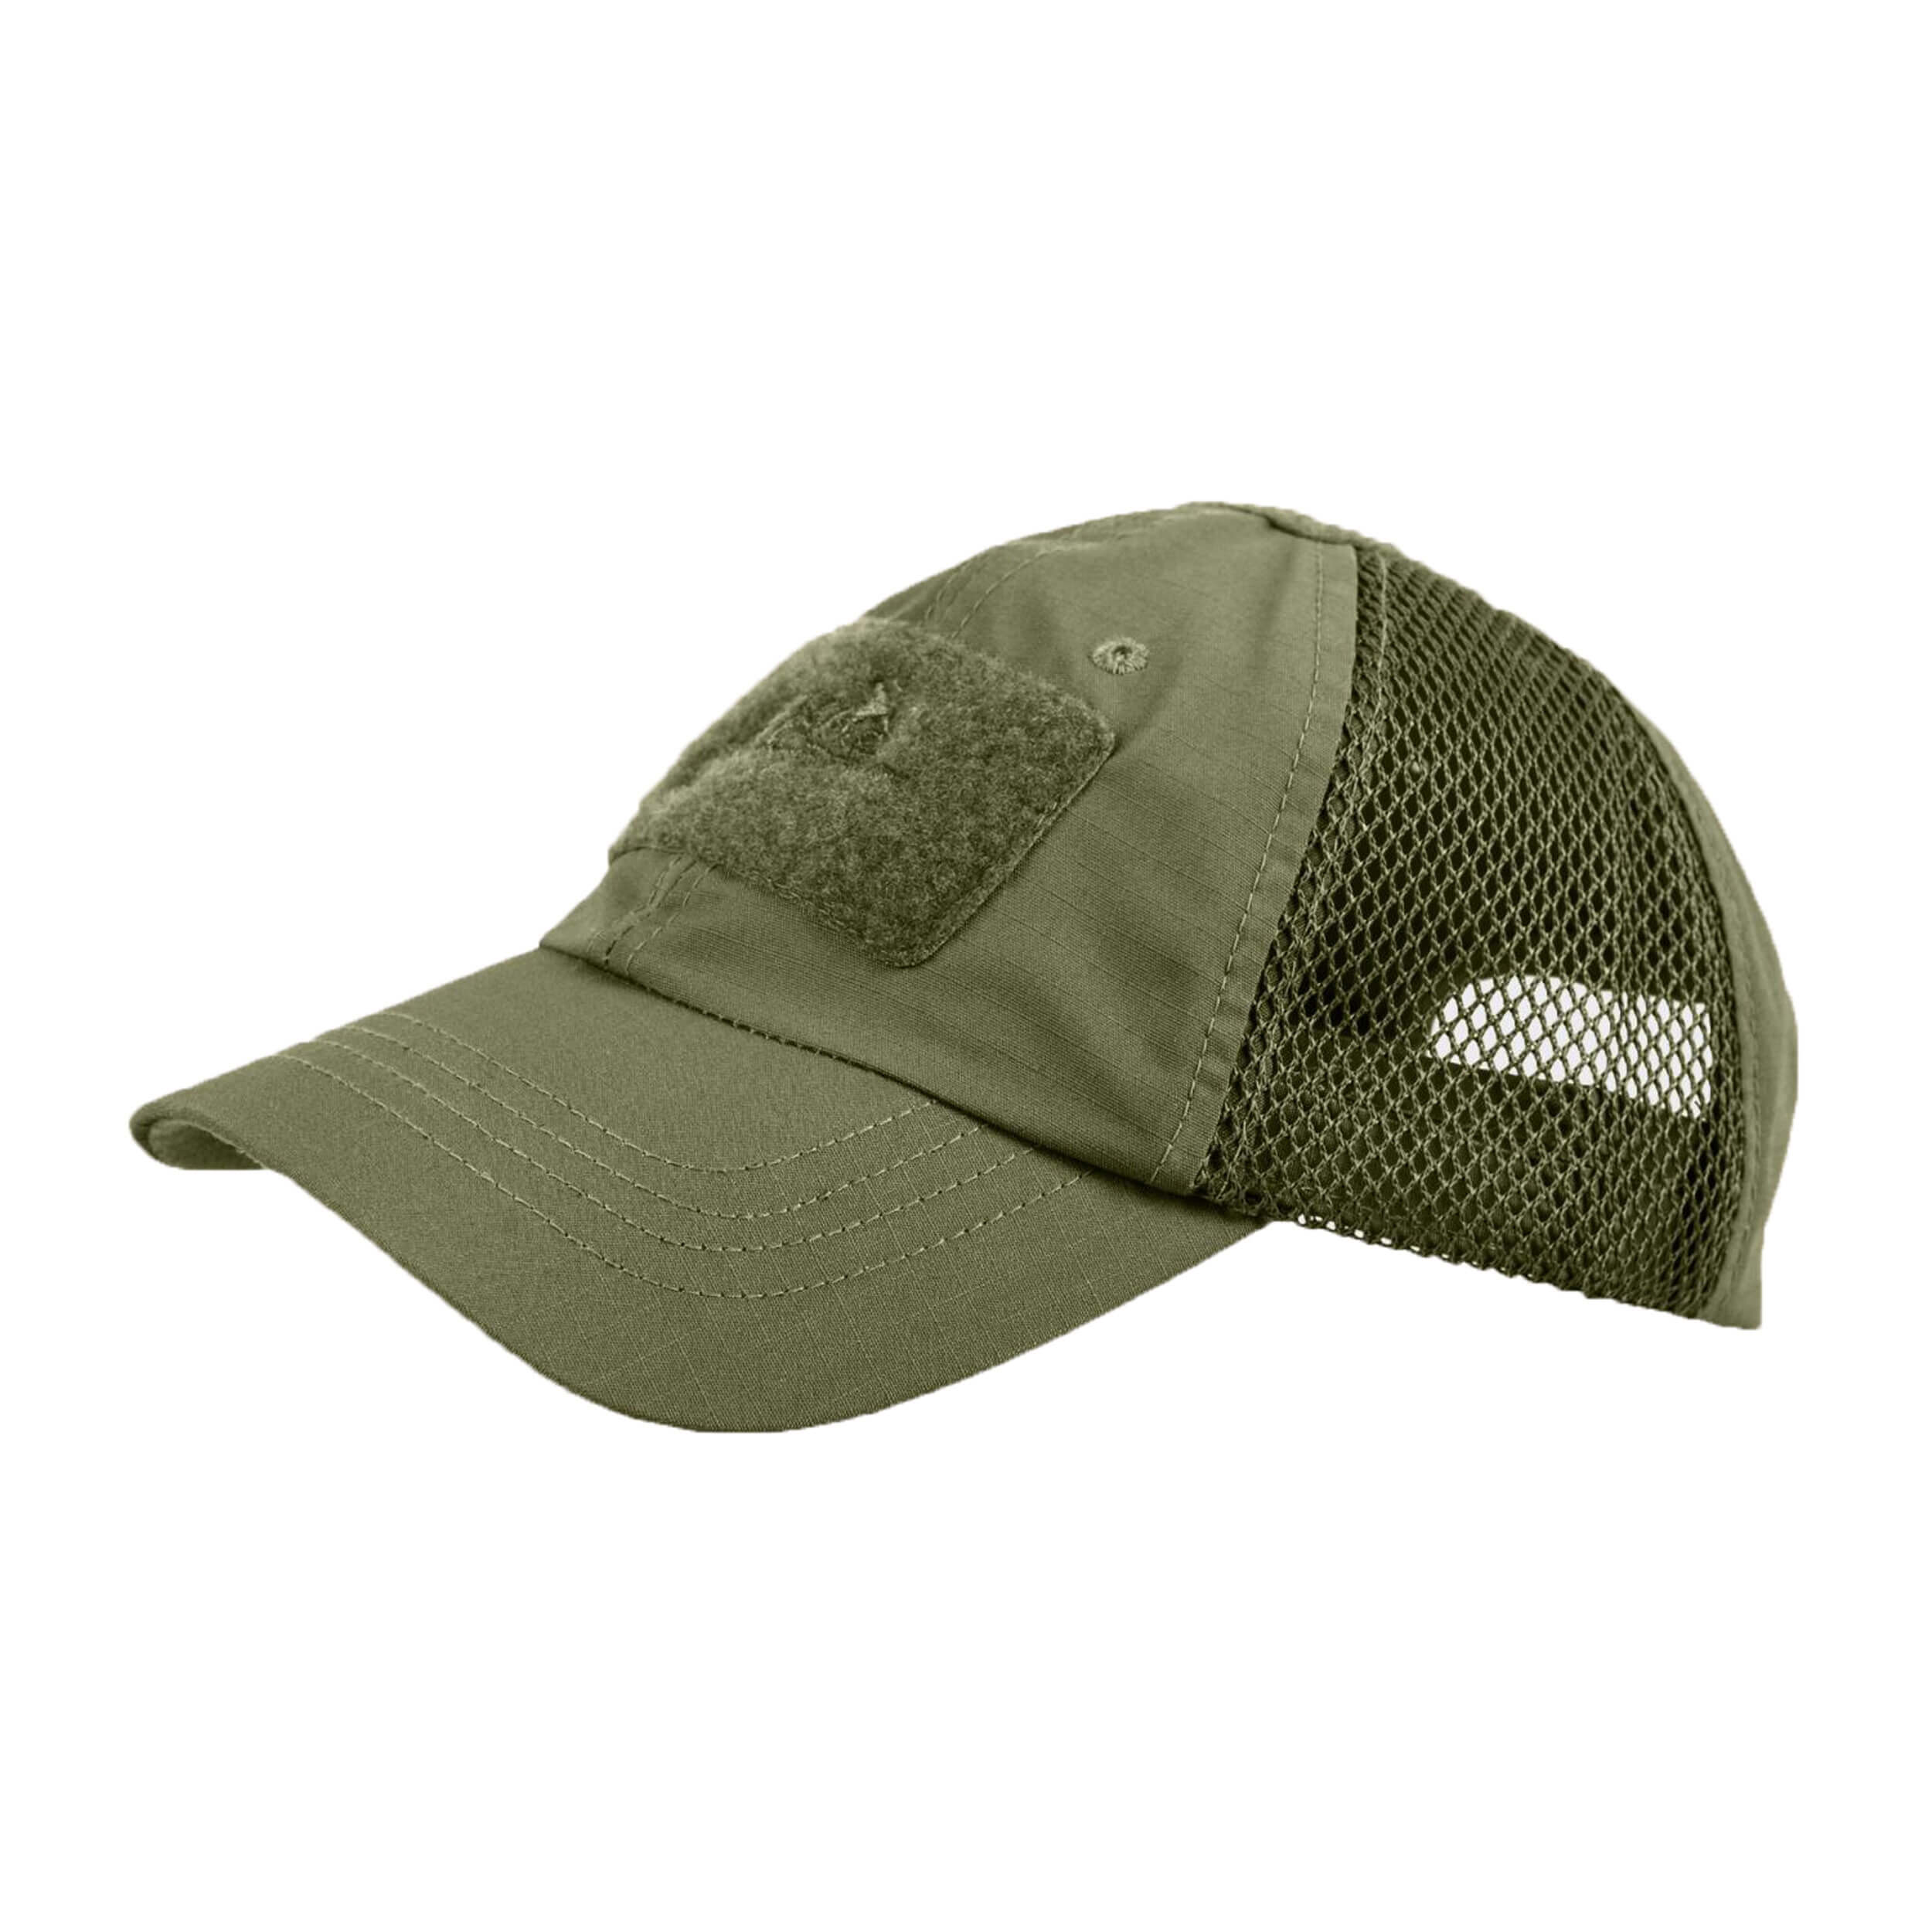 Helikon-Tex Baseball Vent Cap - PolyCotton Ripstop - Olive Green